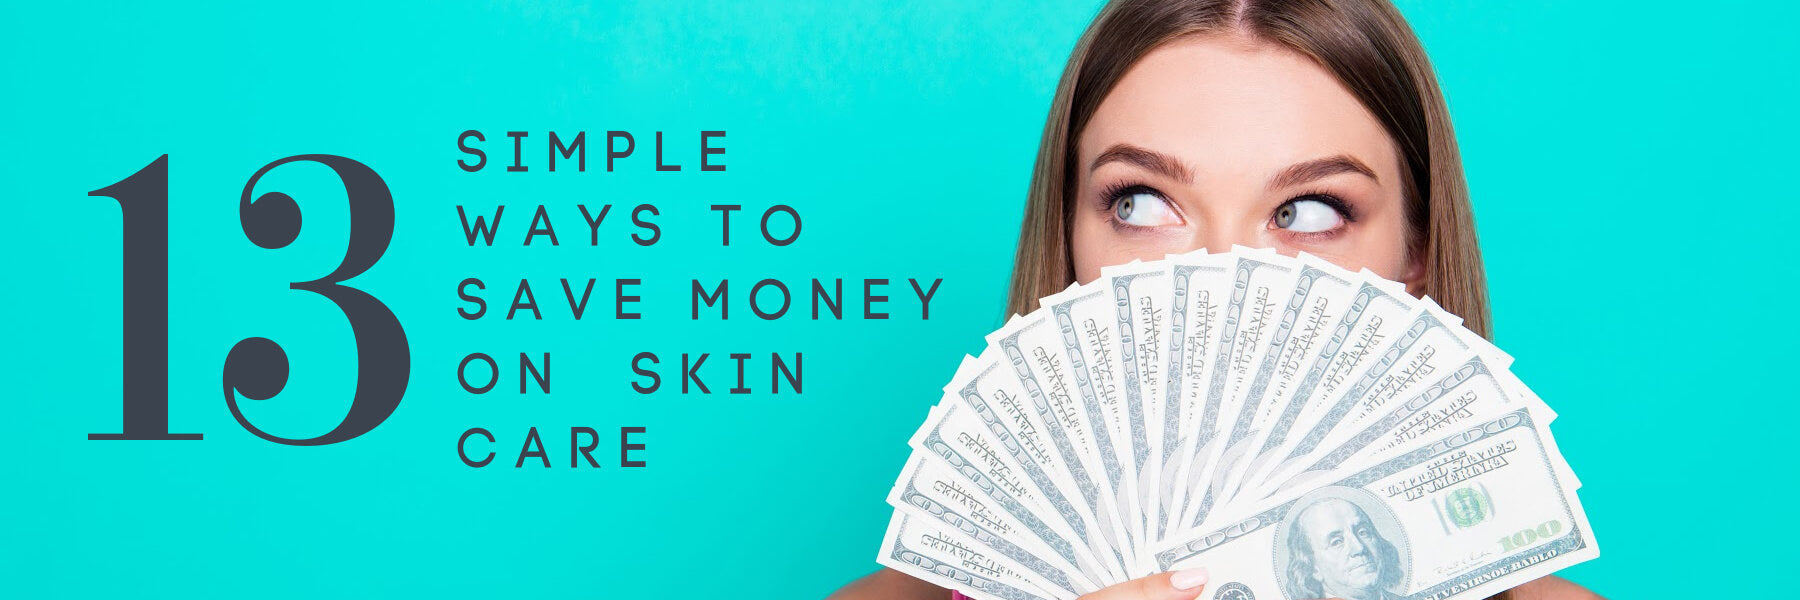 13 simple ways to save money on your skin care routine